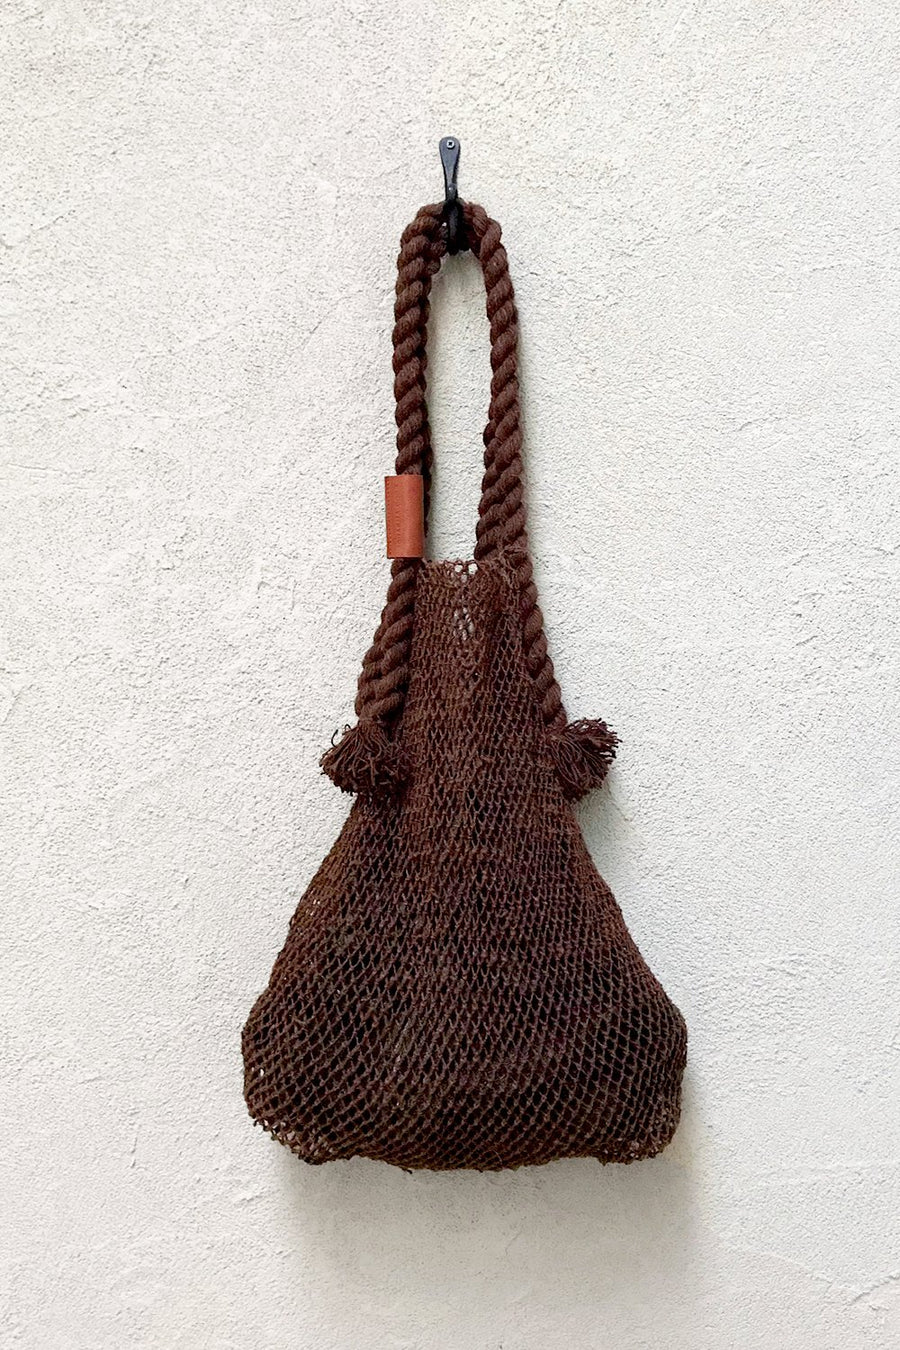 The Dharma Door Hemp String Bag